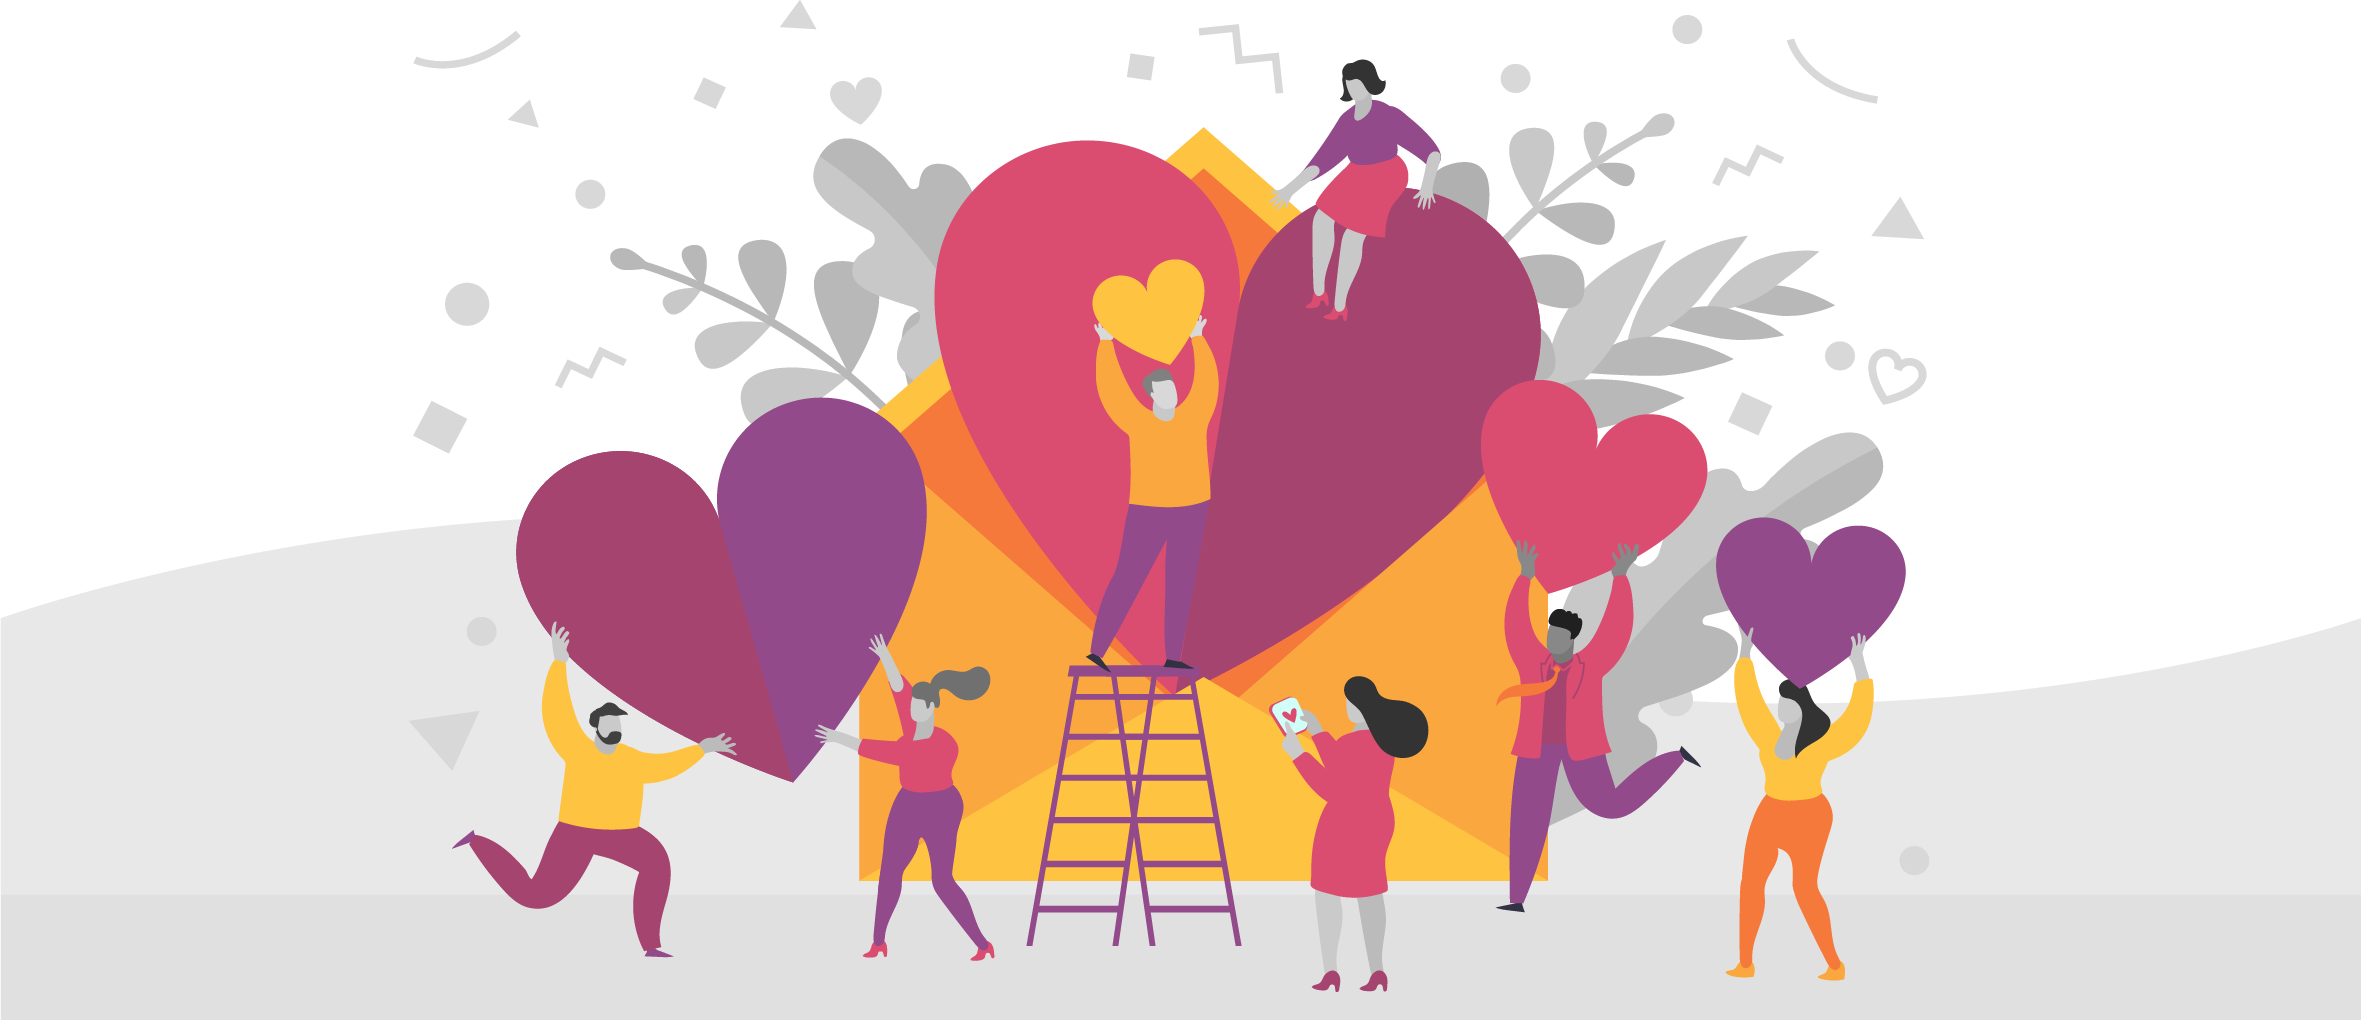 Illustration of a group of people holding hearts